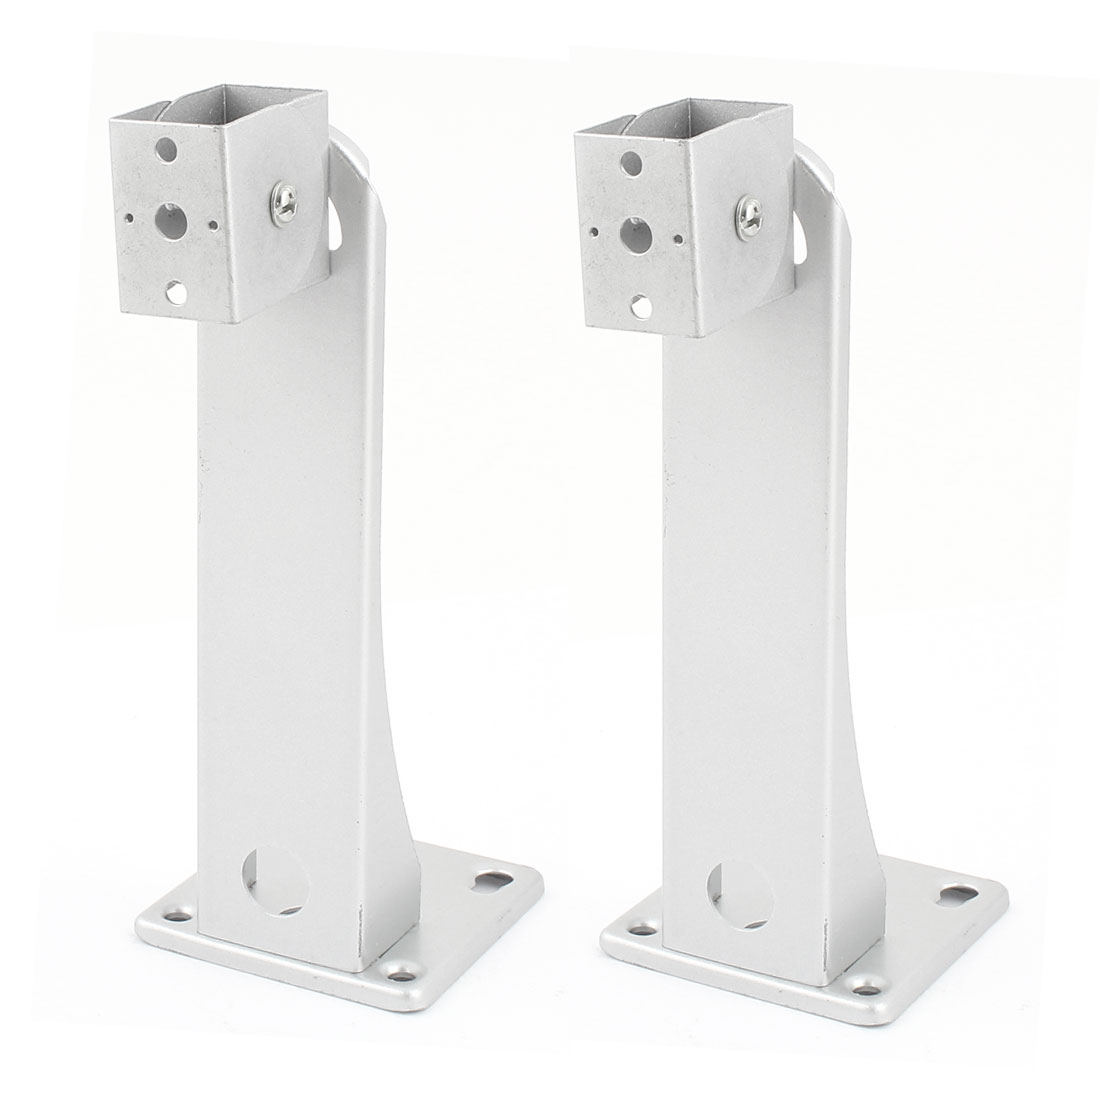 2 Pcs Silver Tone Ceiling Mounting Stand Holder CCTV Camera Bracket